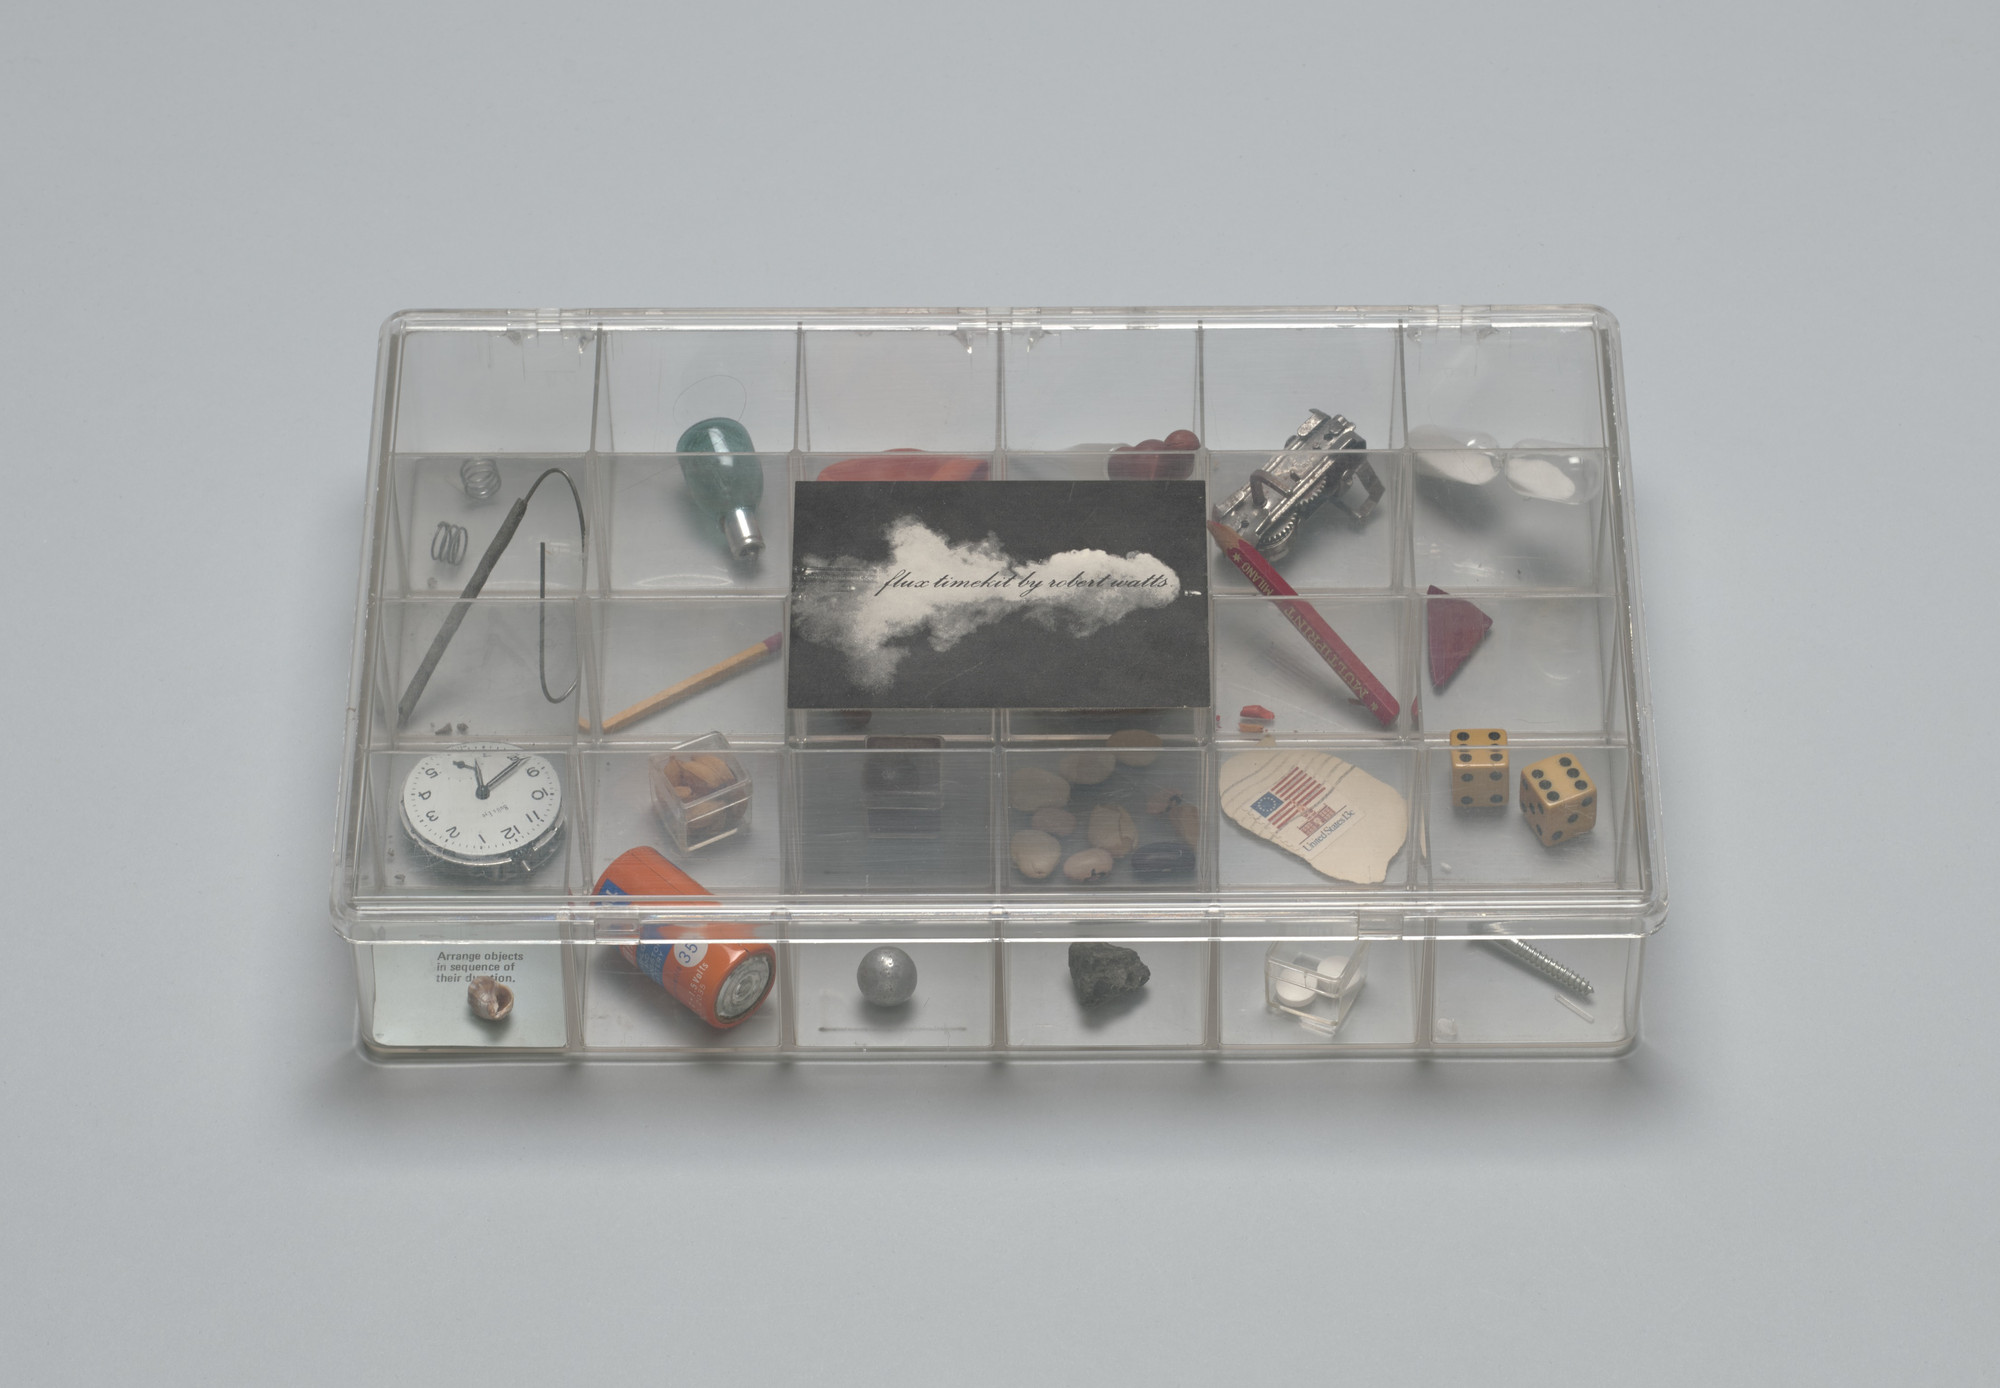 Robert Watts. Flux Timekit. 1978